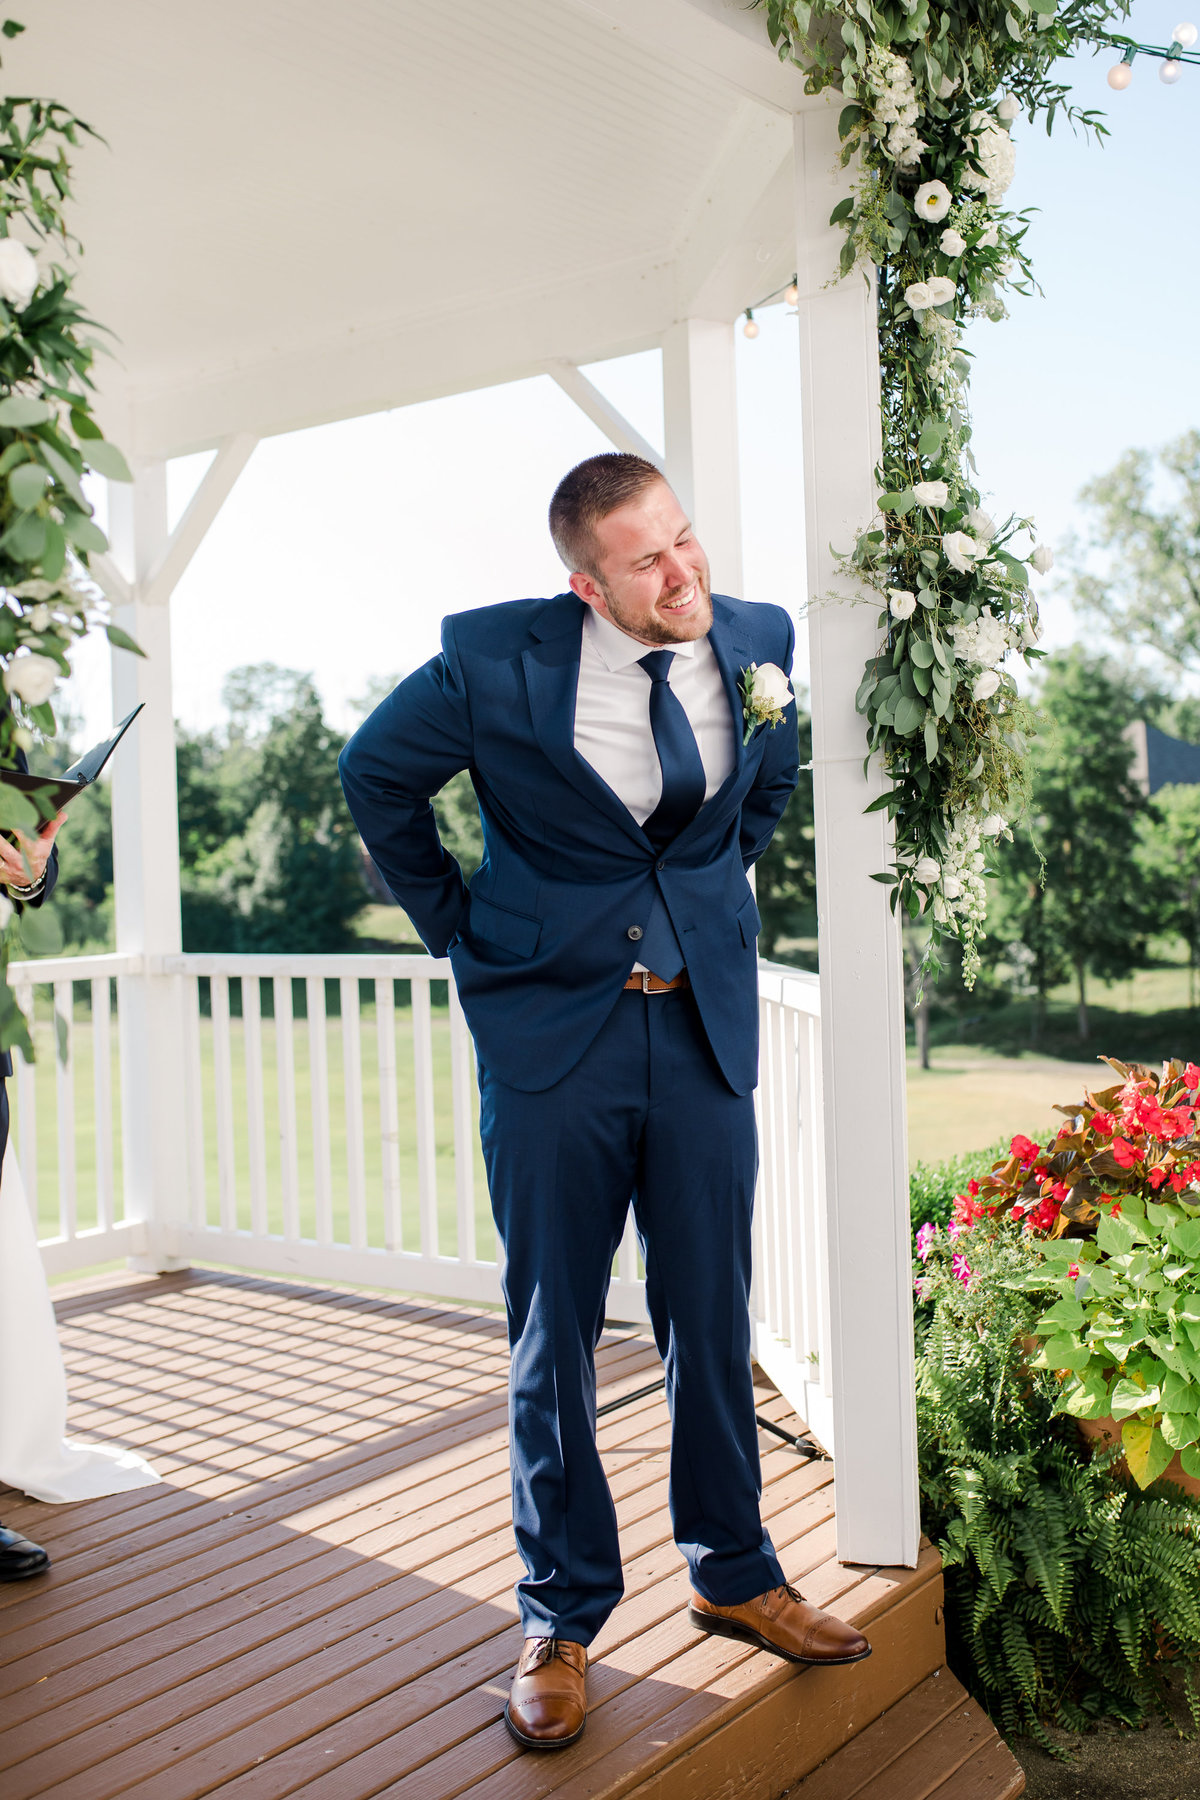 A grooms reaction to the bride walking down the aisle on their wedding day